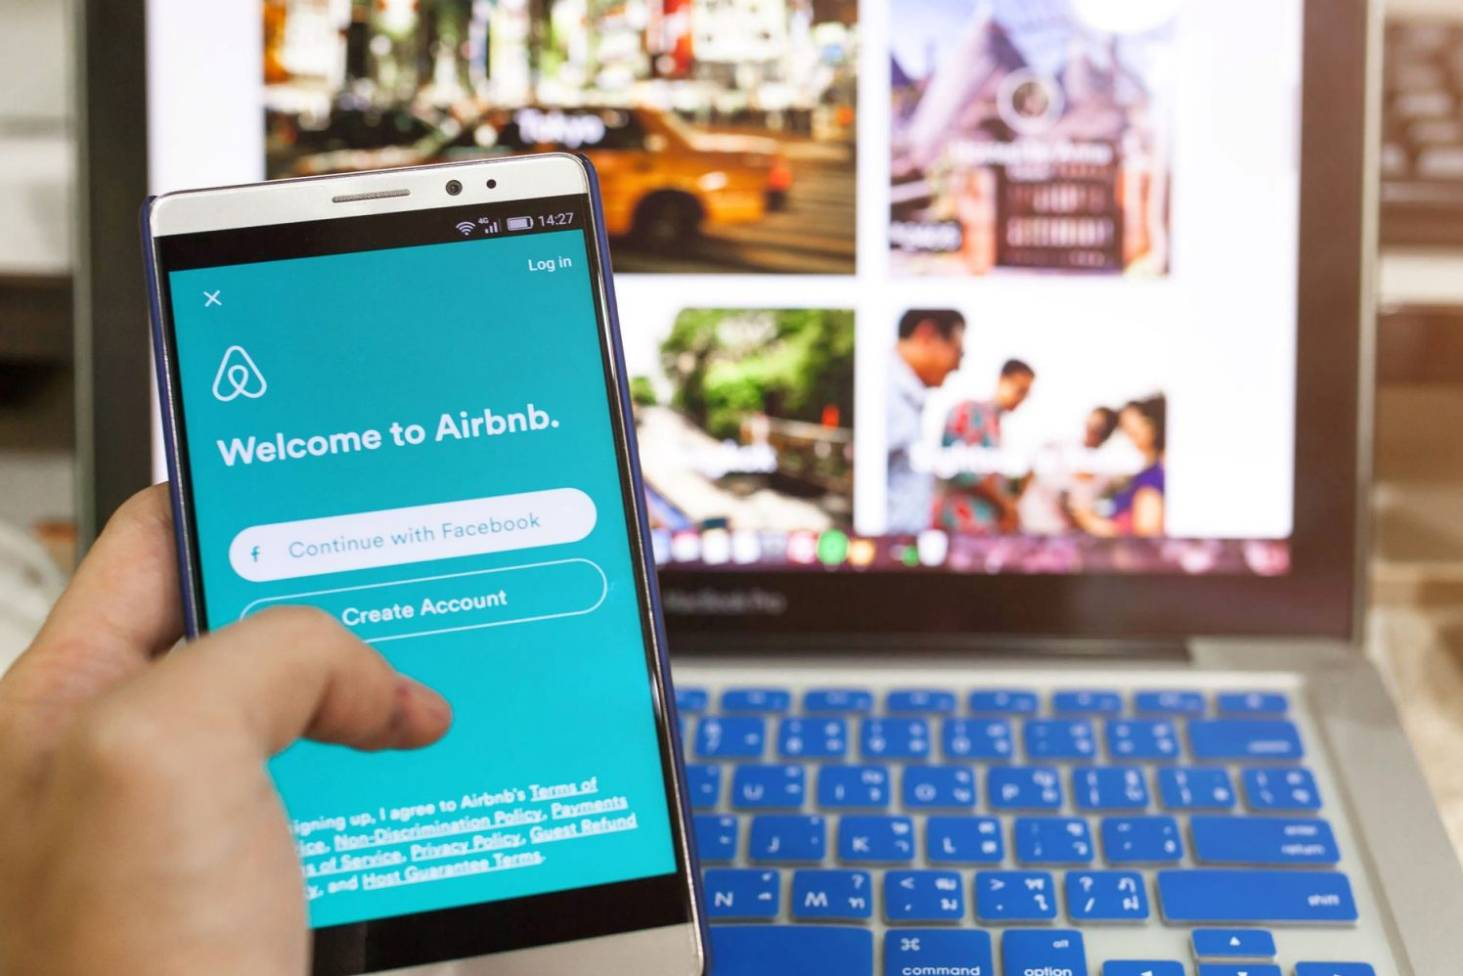 The A to Z guide to Airbnb: How it works and what should you know